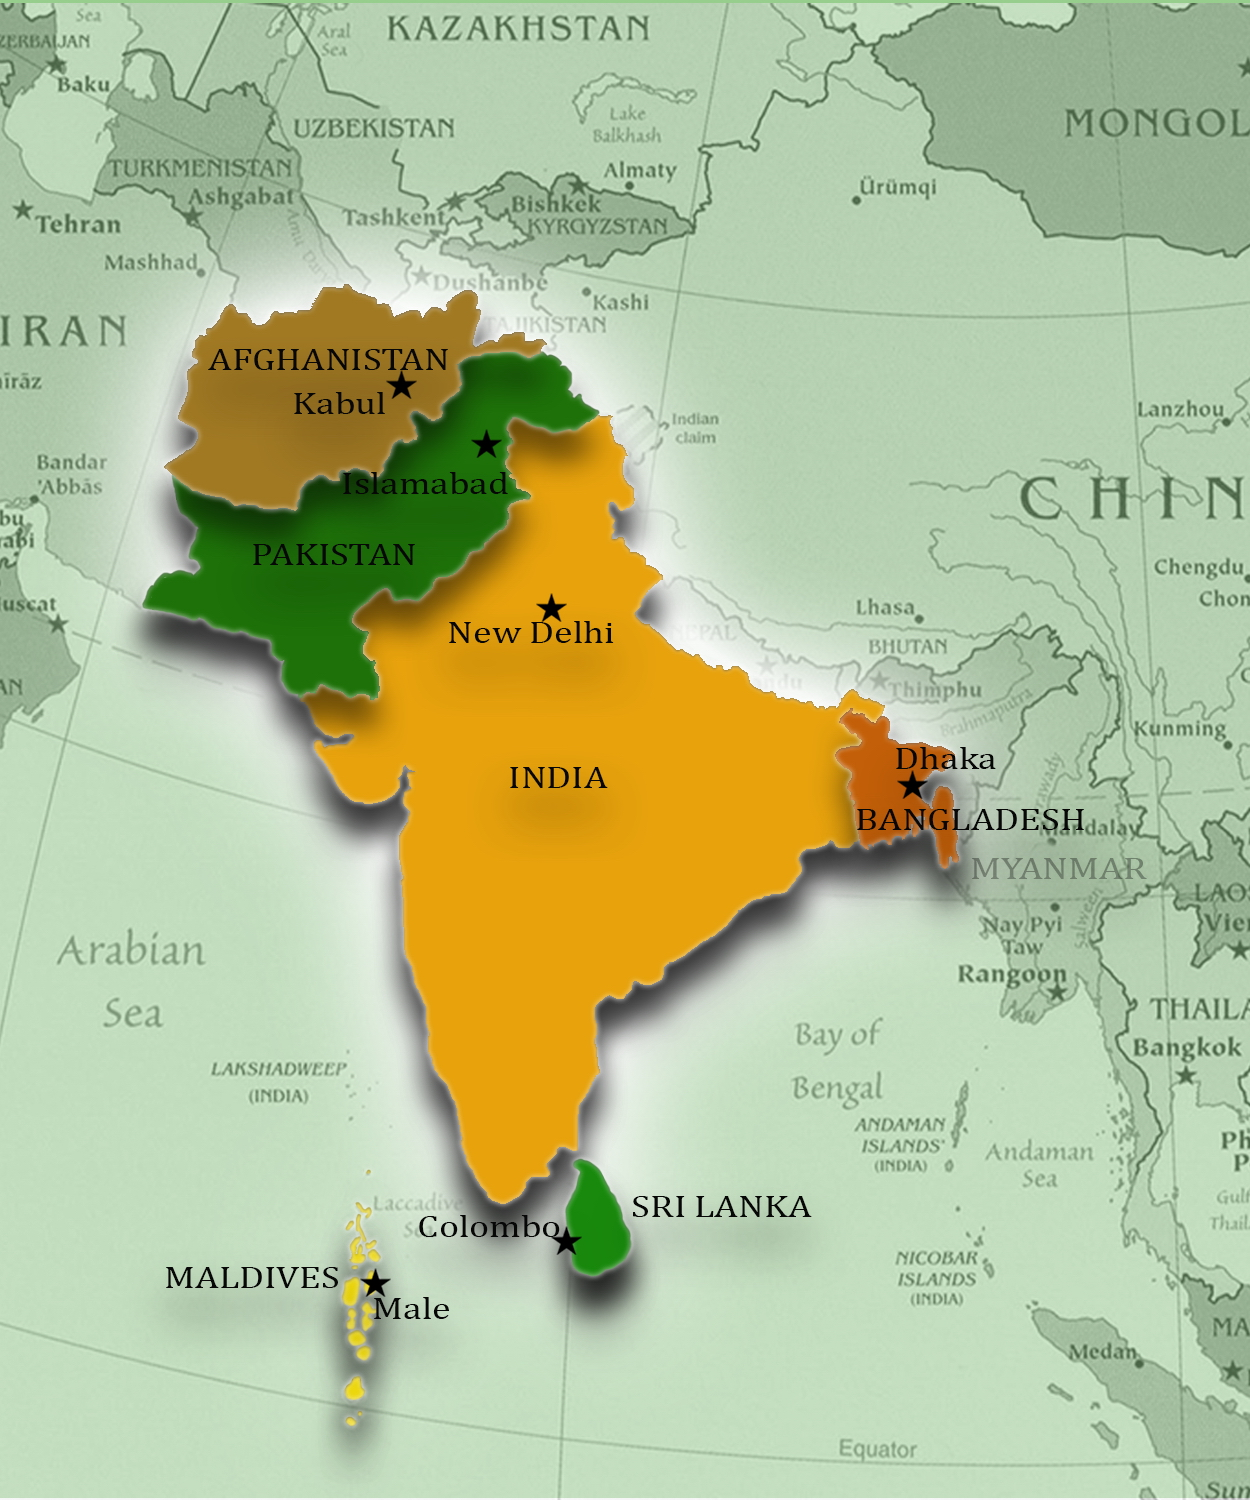 Indian Subcontinent